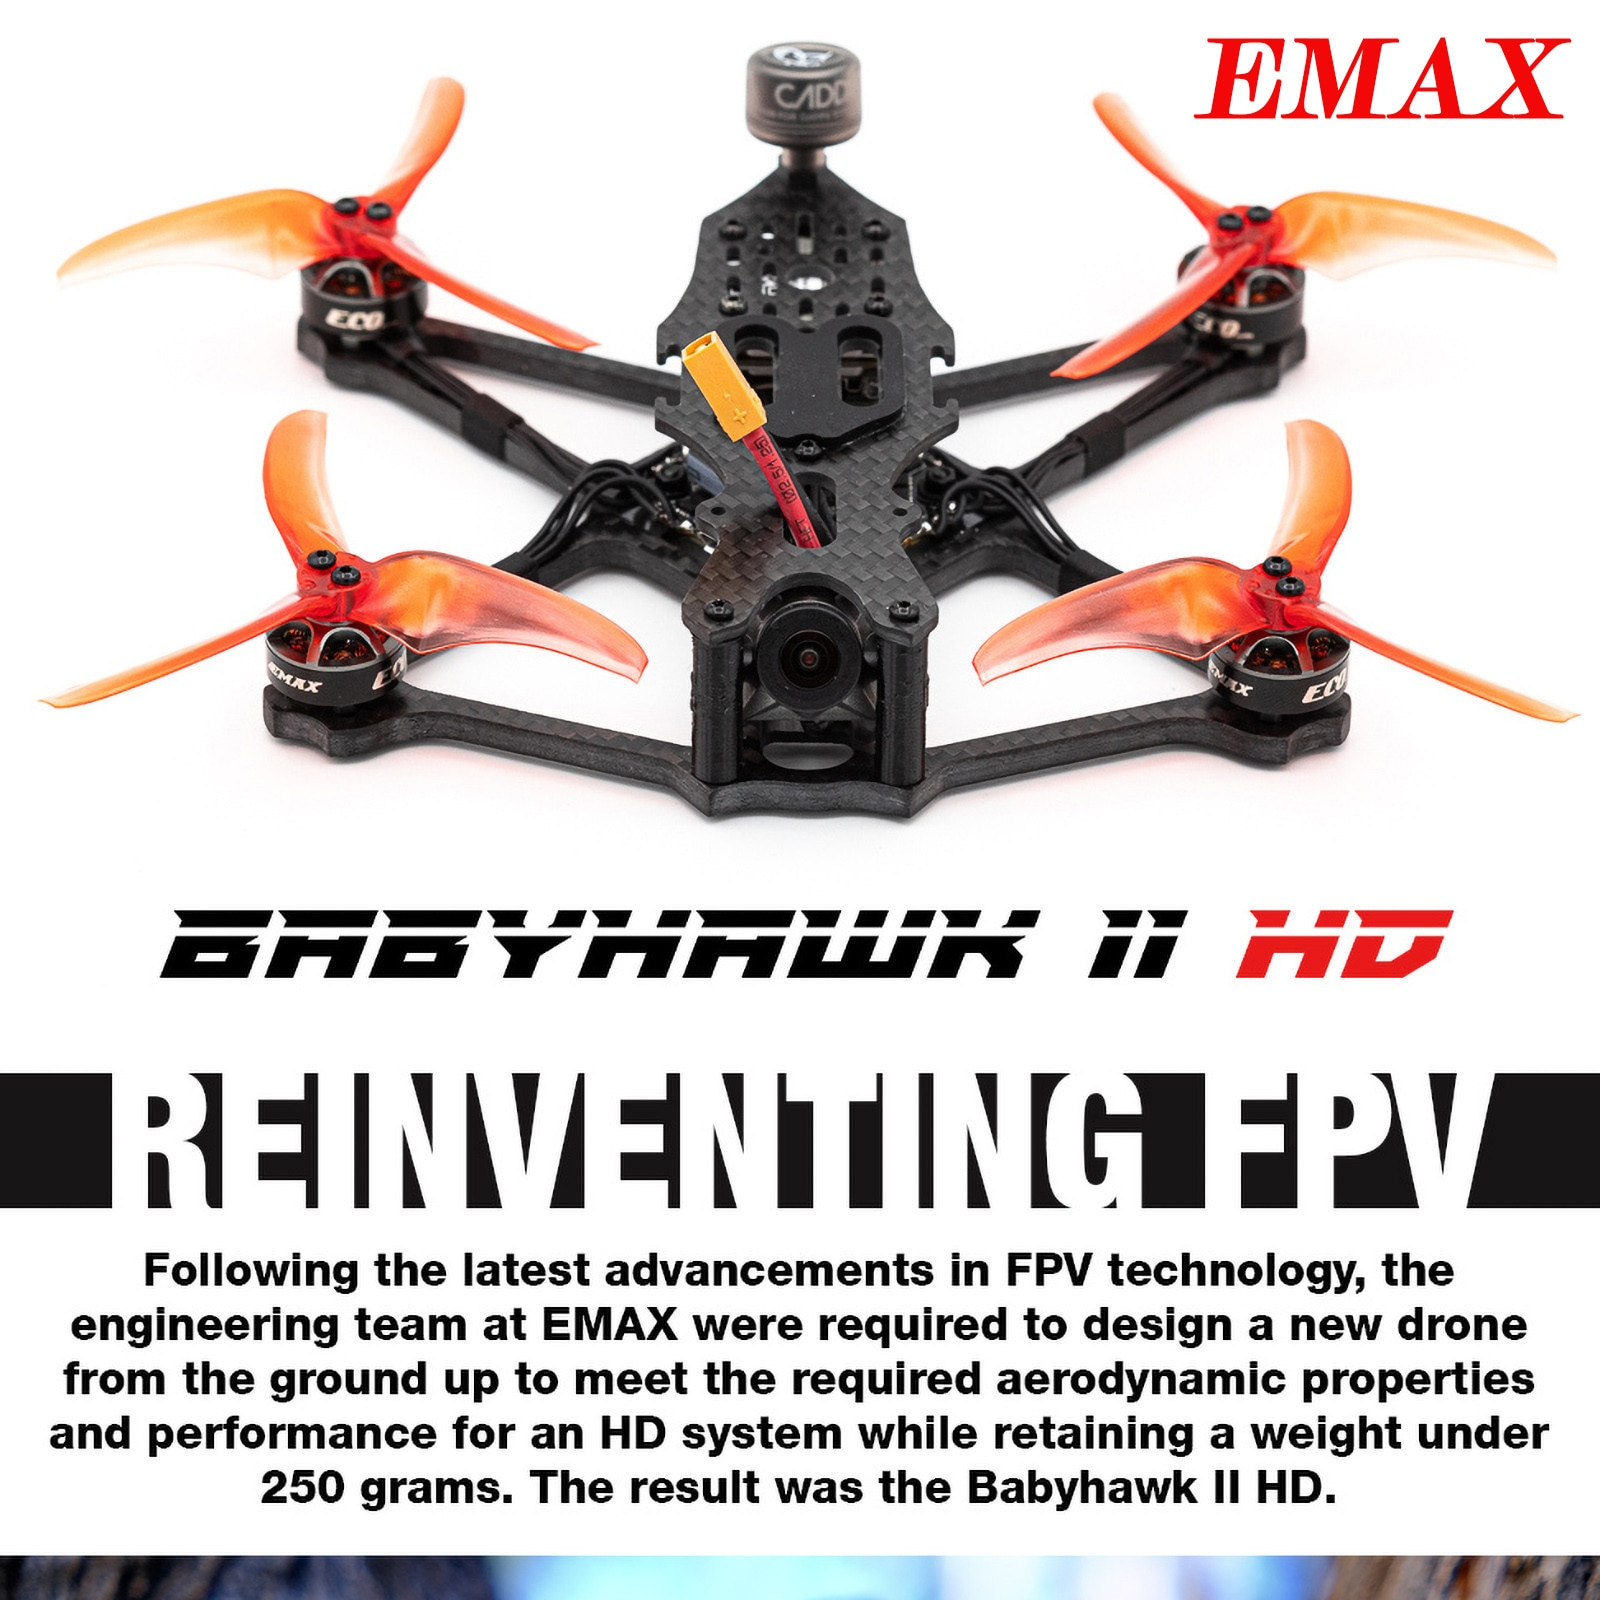 EMAX Aerial Photography Drone Babyhawk 2 Hd Pnp 155mm F4 4s Fpv Racing Drone Children's Integrated Remote Control Drone Toy #K